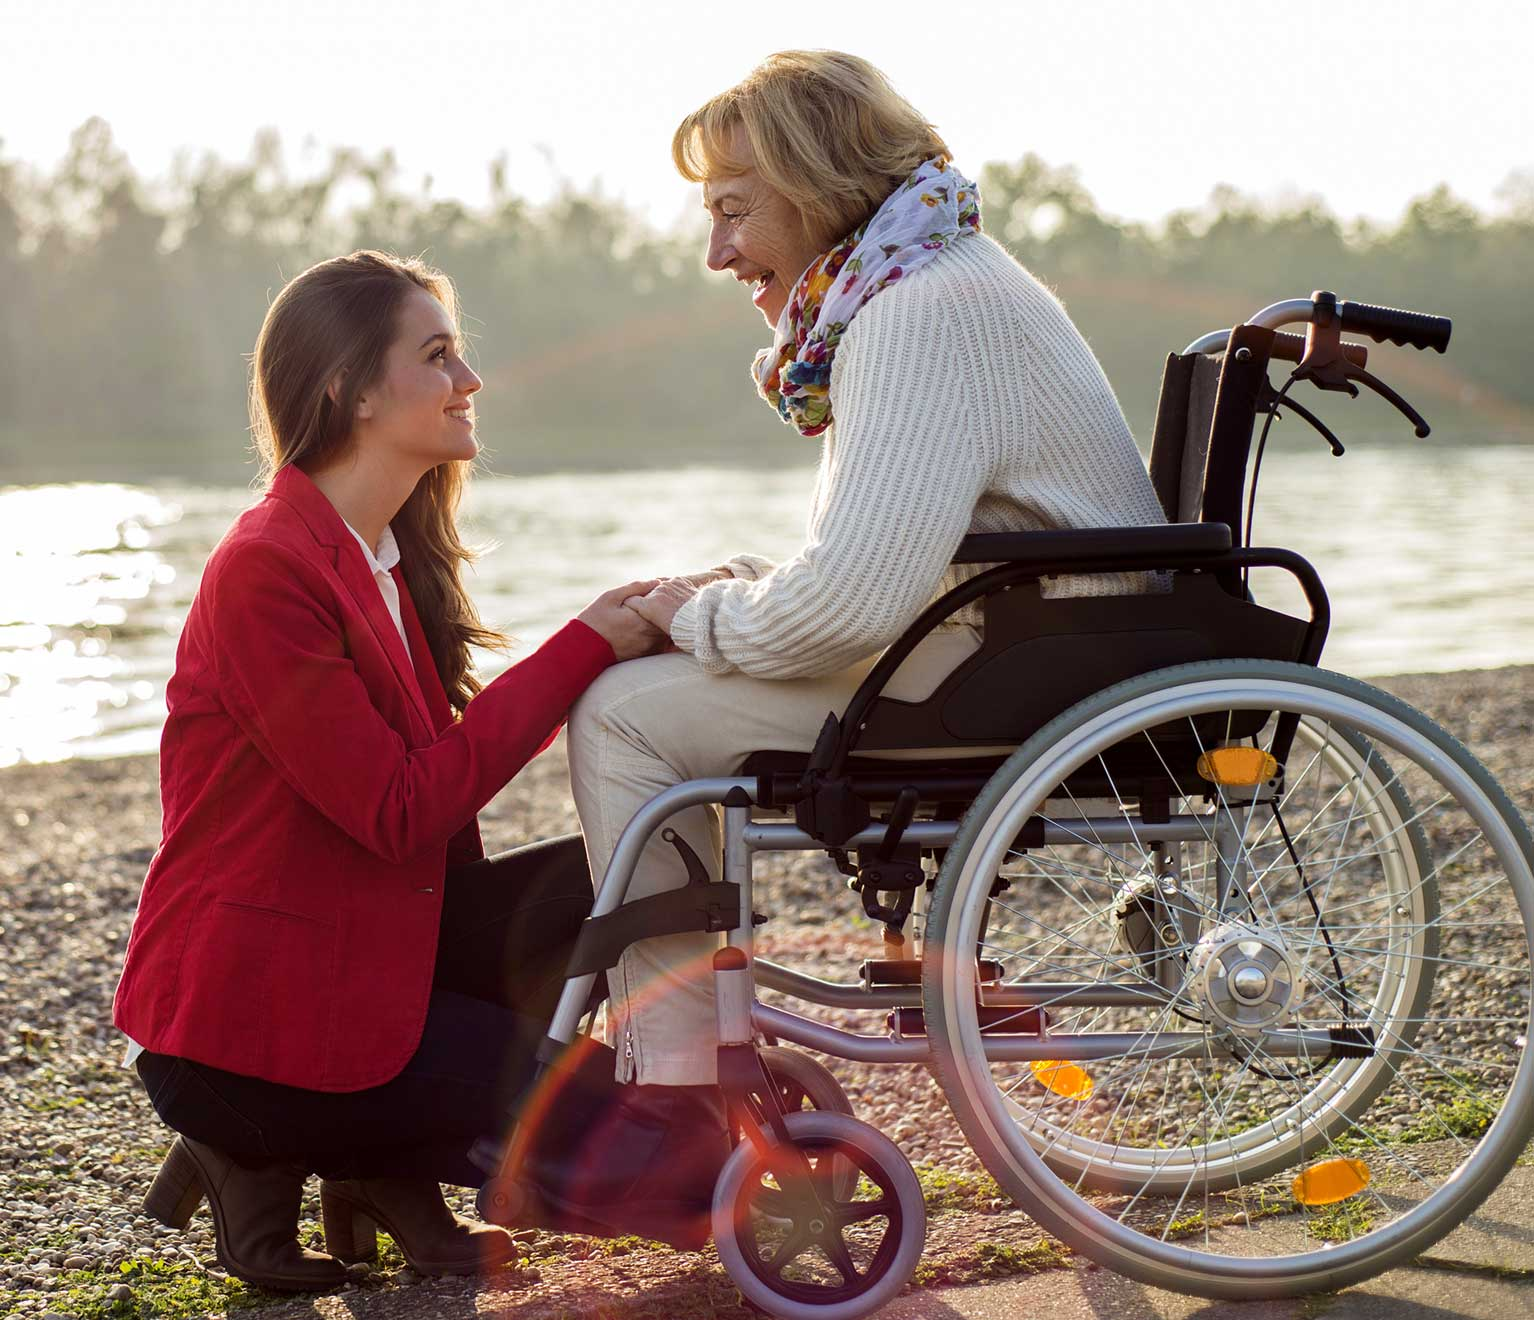 Life Insurance To Ensure Care For Disabled Loved Ones